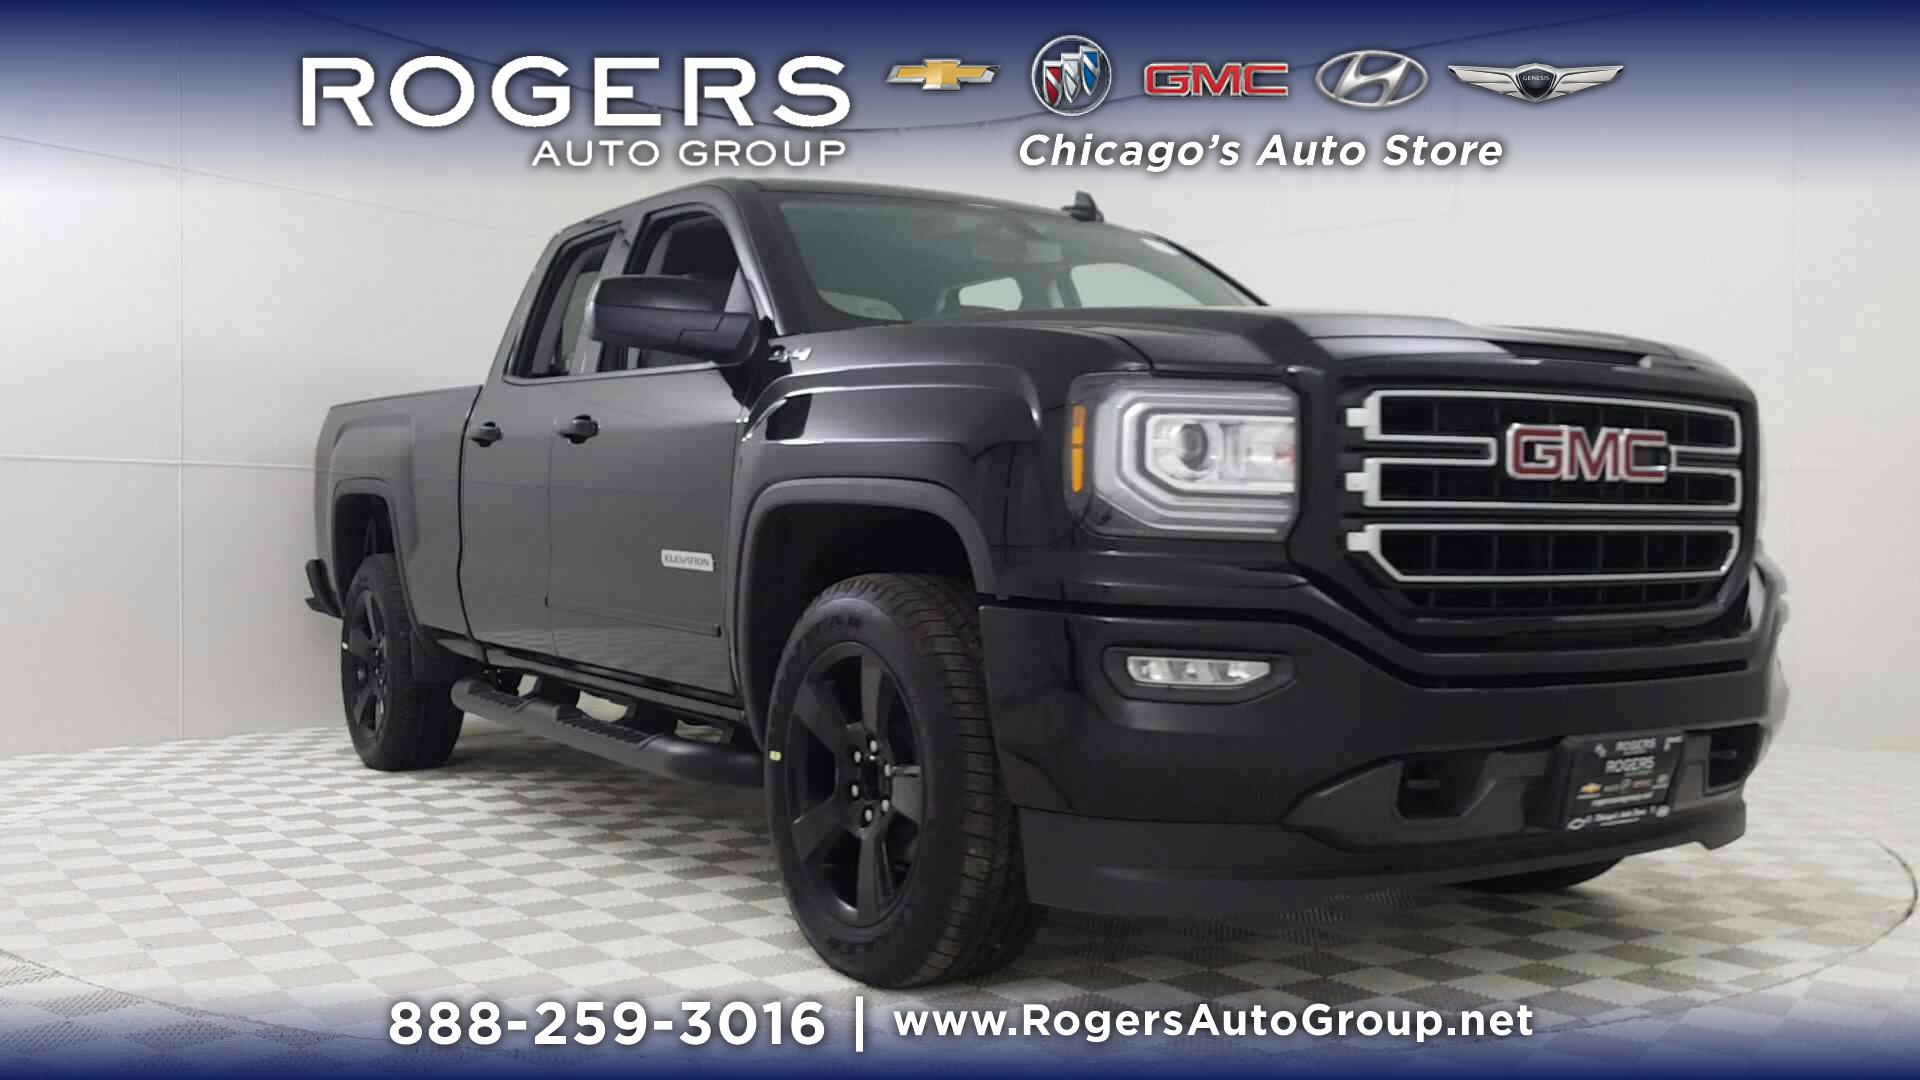 hoursanddirections s directions and dealerships gmc fletch get hours michigan in buick petoskey to